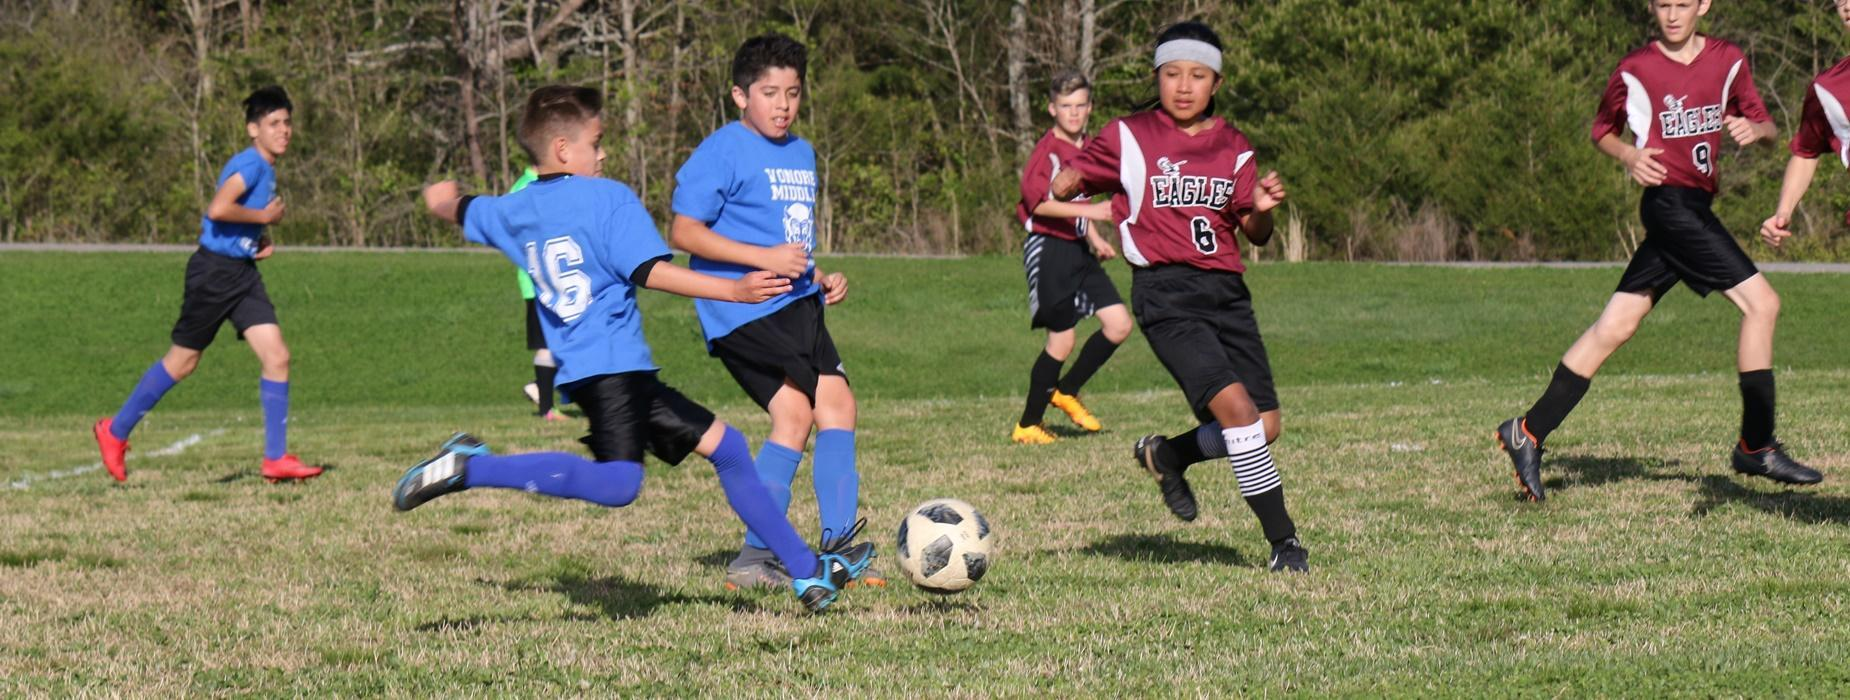 VMS students playing soccer